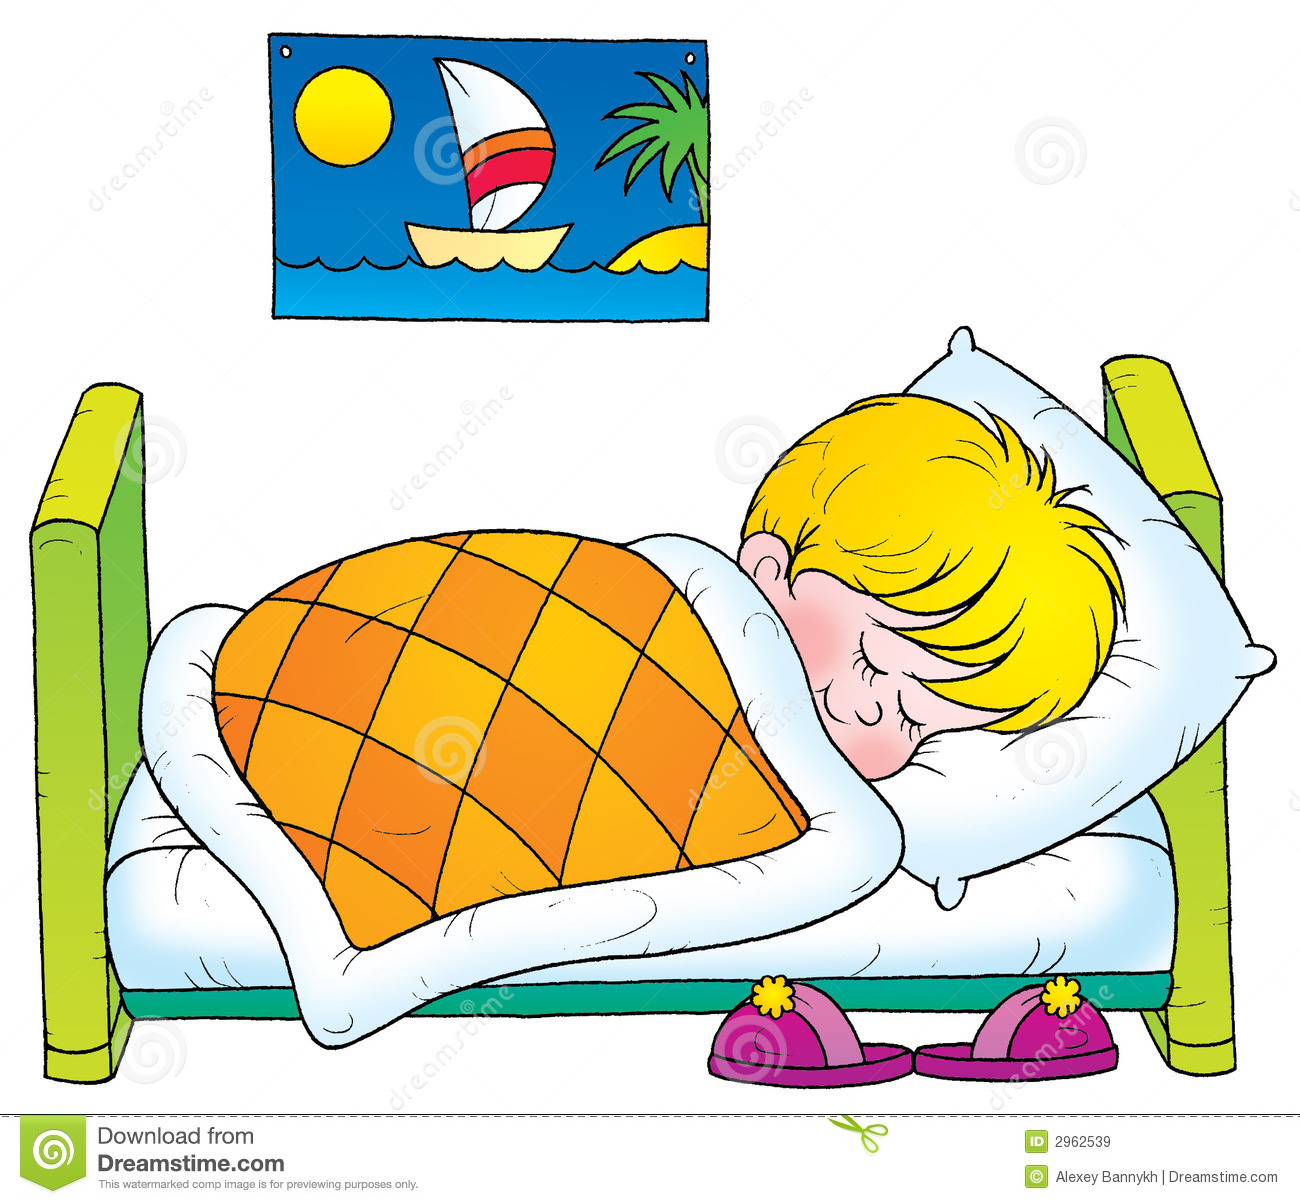 sleep clipart clipart panda free clipart images rh clipartpanda com sleeping clipart clipart sleeping person